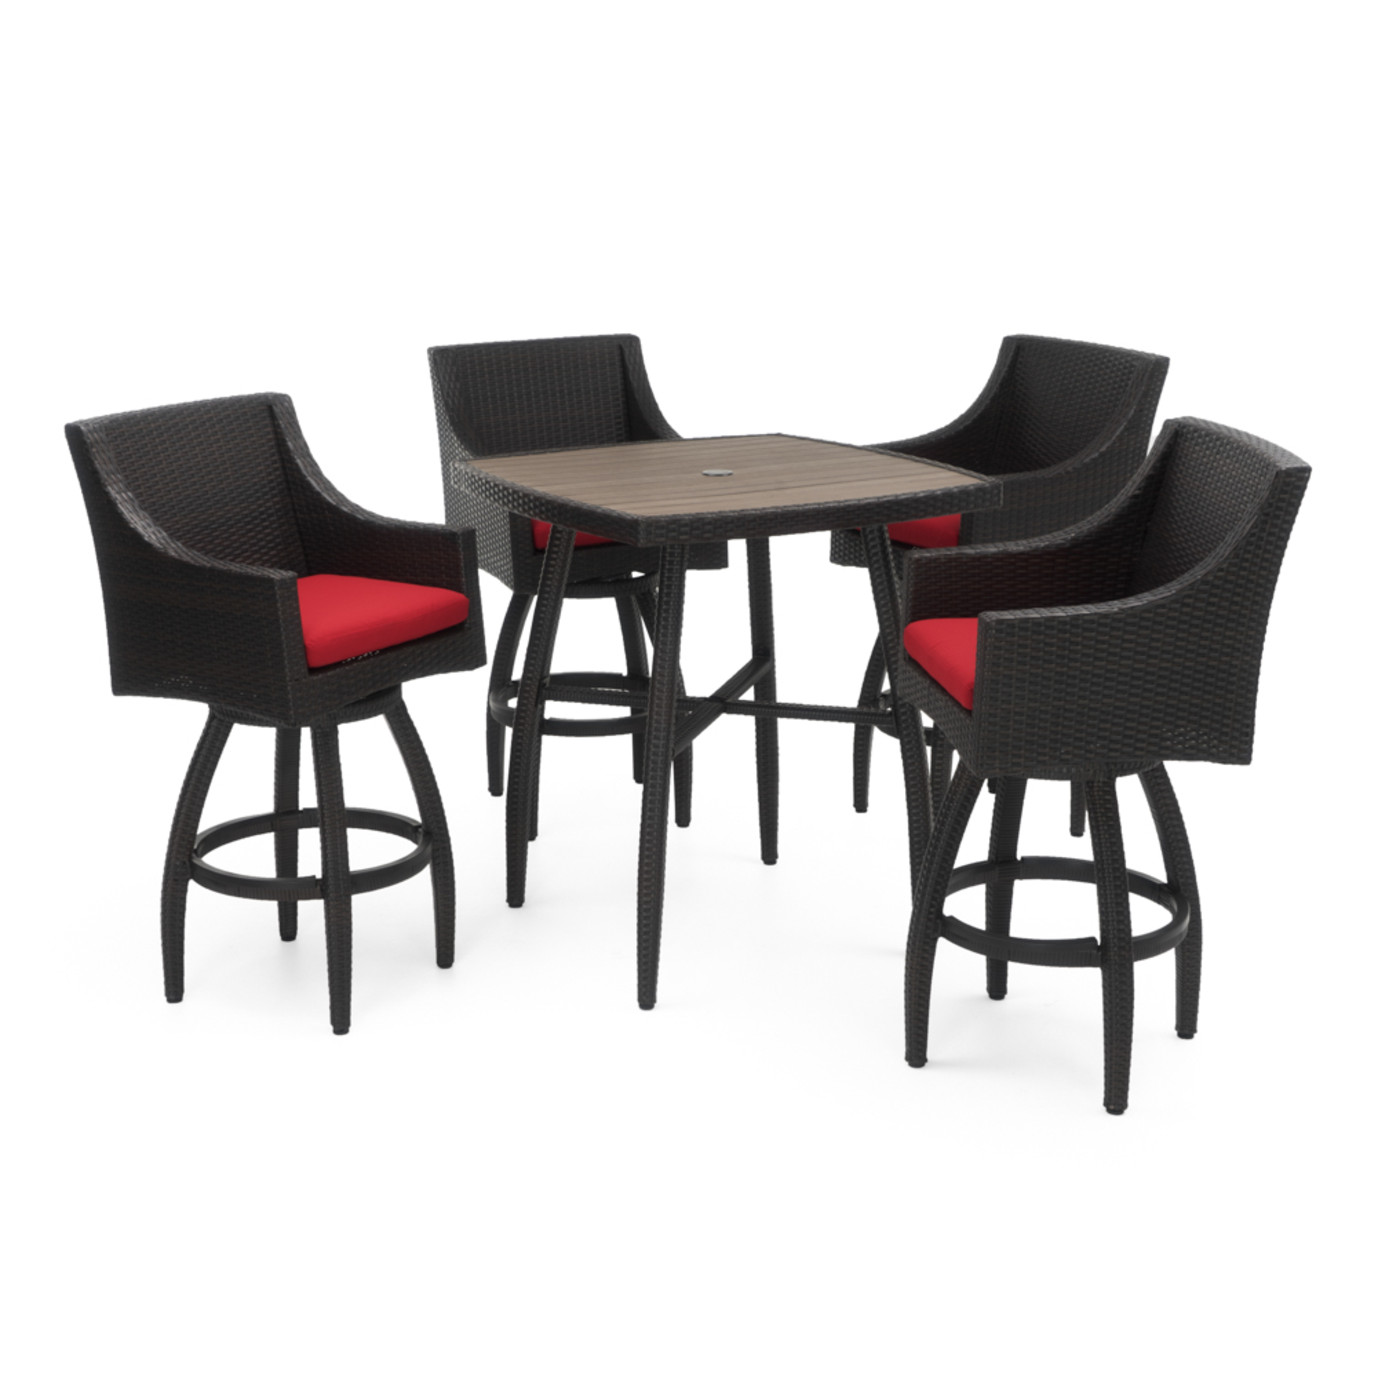 Deco™ 5pc Barstool Set - Sunset Red